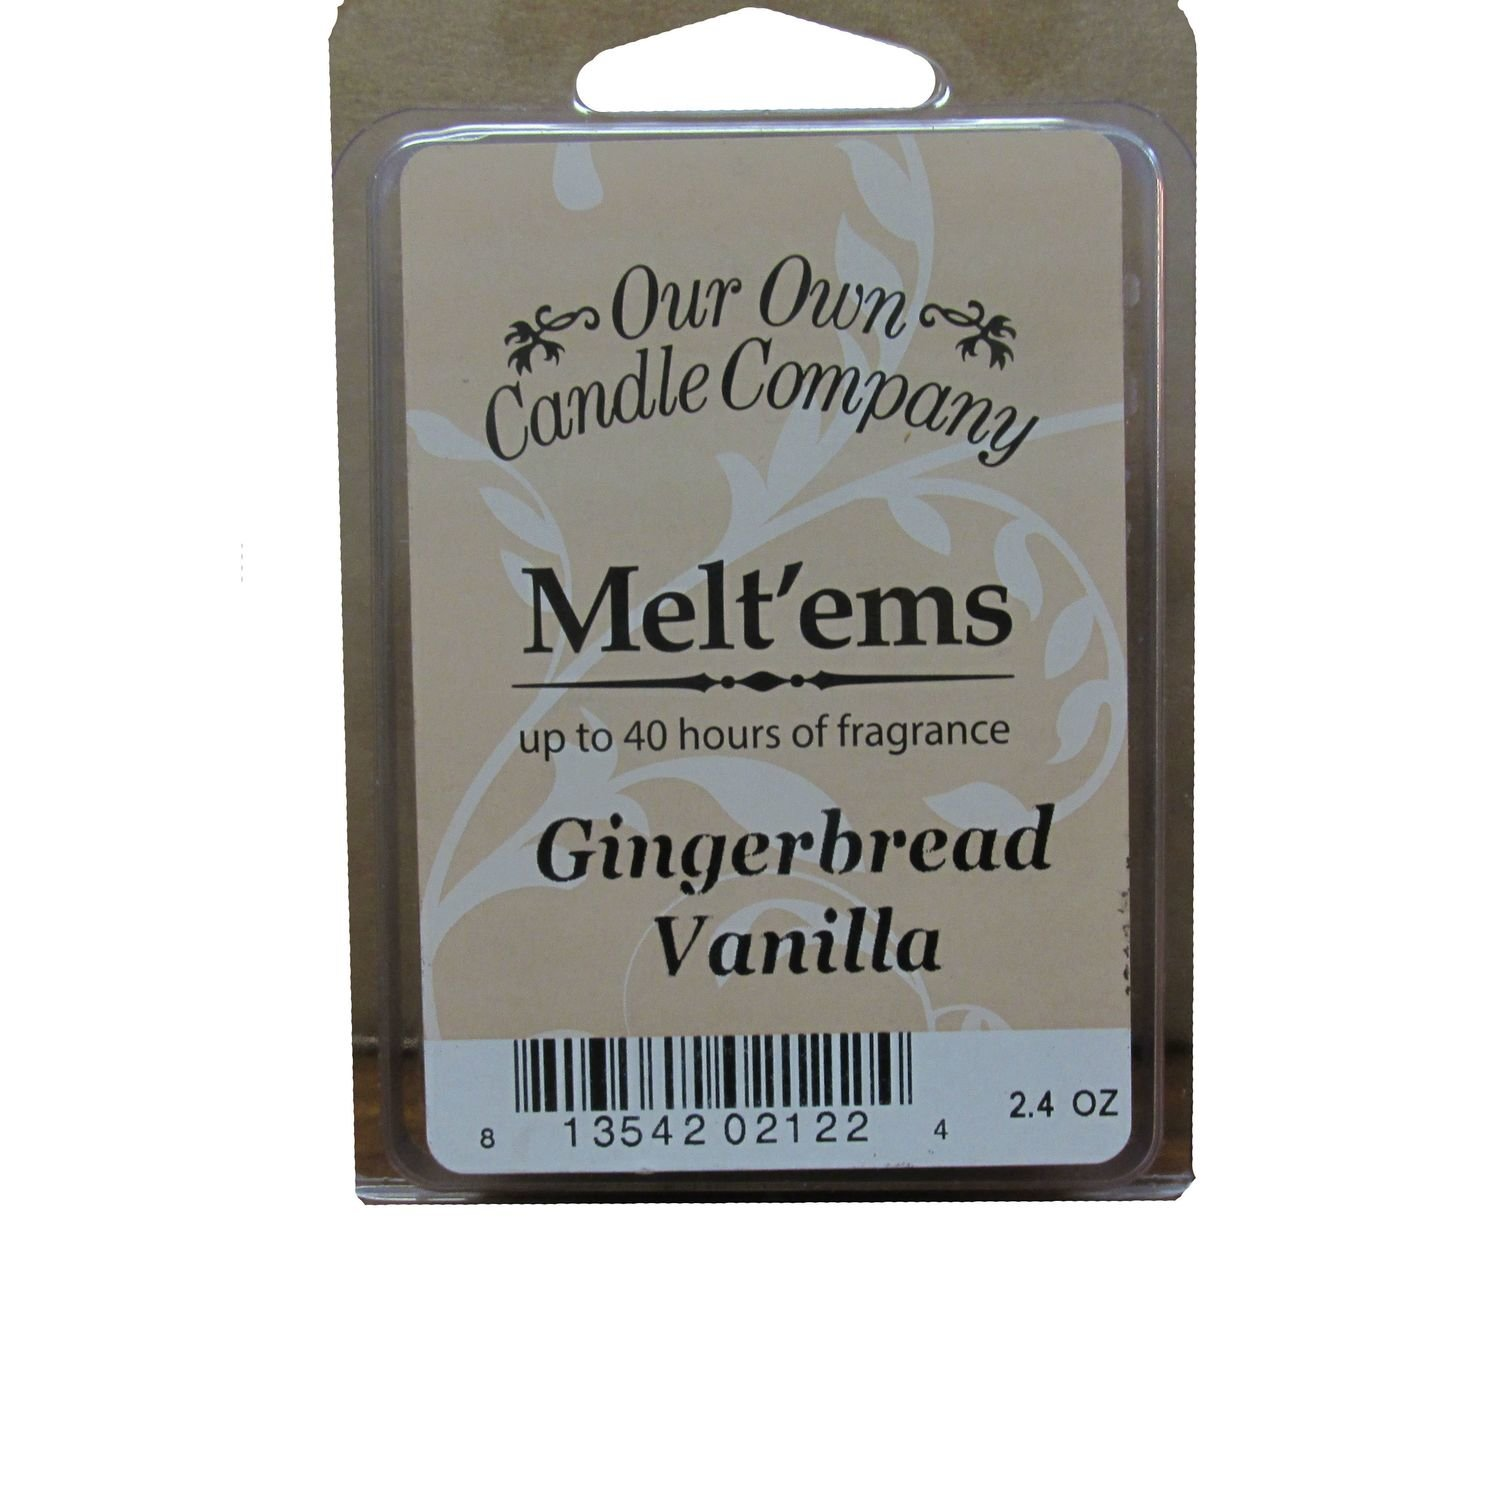 GINGERBREAD VANILLA MELT 6 CUBE 2.4 OZ UPC# 813542021224